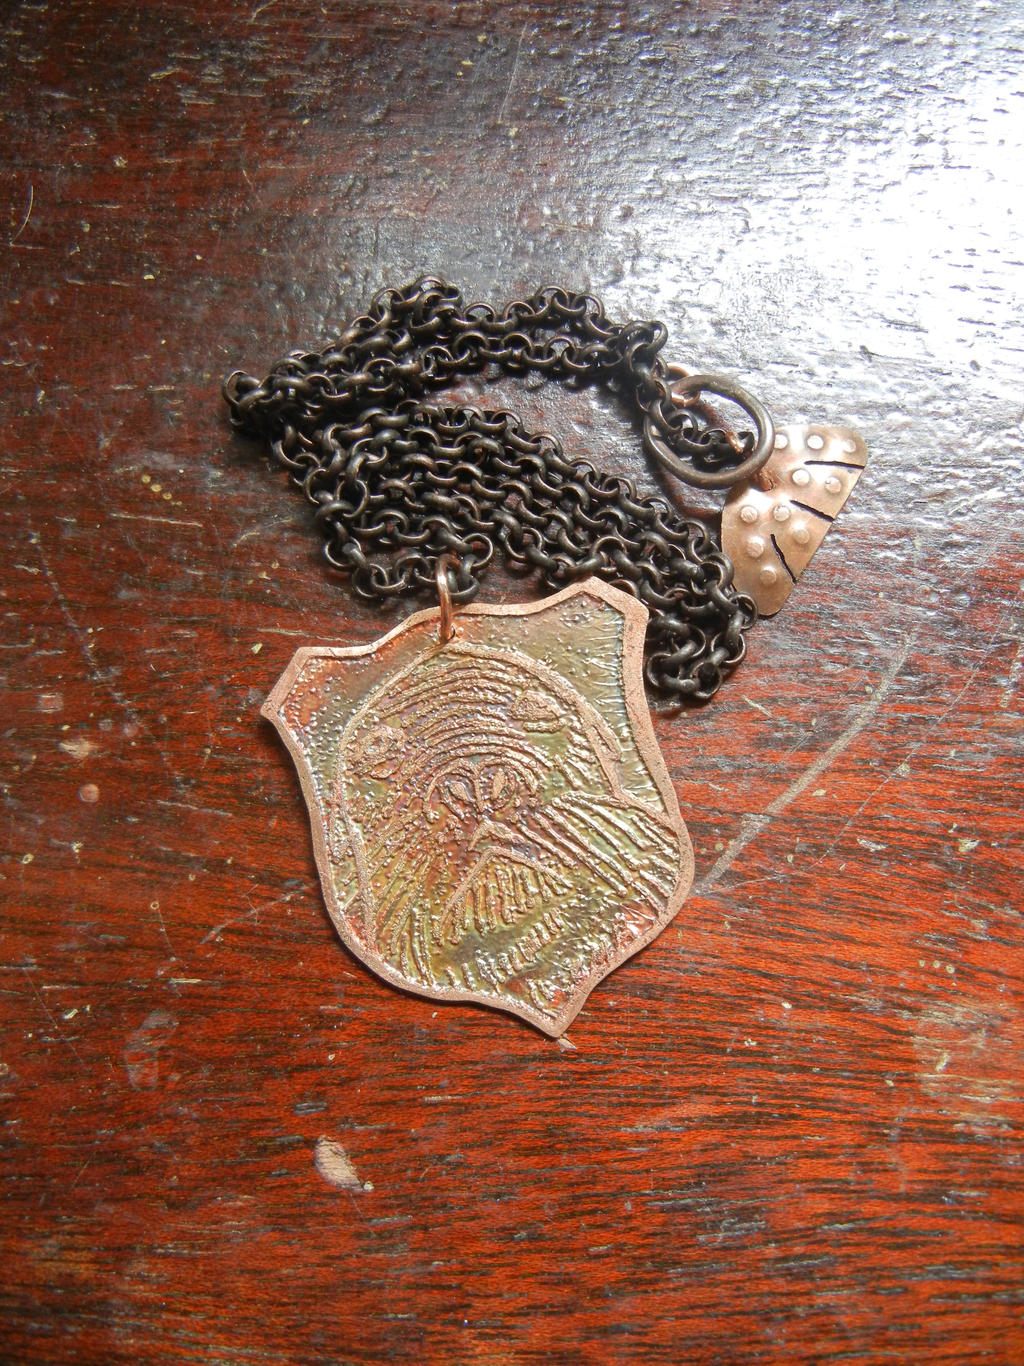 Etched Menagerie Sea lion pendant by modastrid